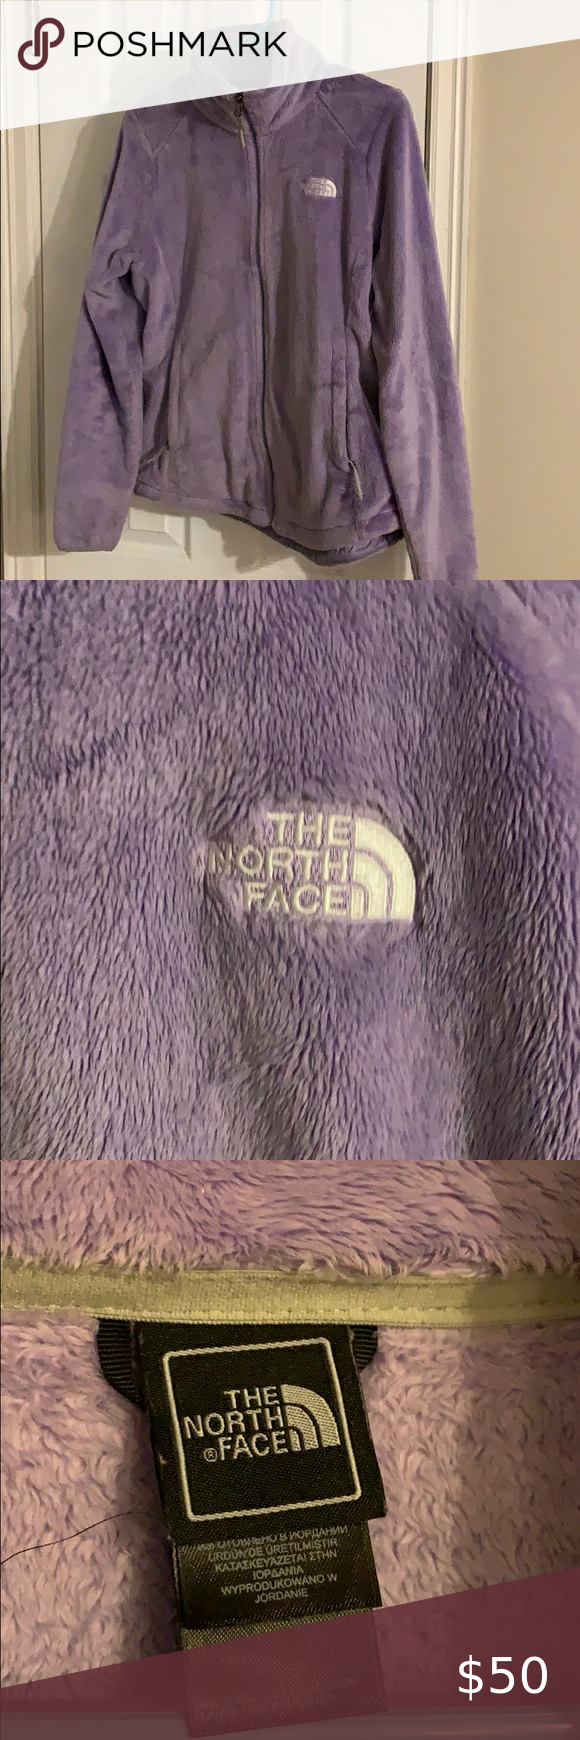 Purple North Face Osito Jacket Price Is Final North Face Osito The North Face North Face Jacket [ 1740 x 580 Pixel ]